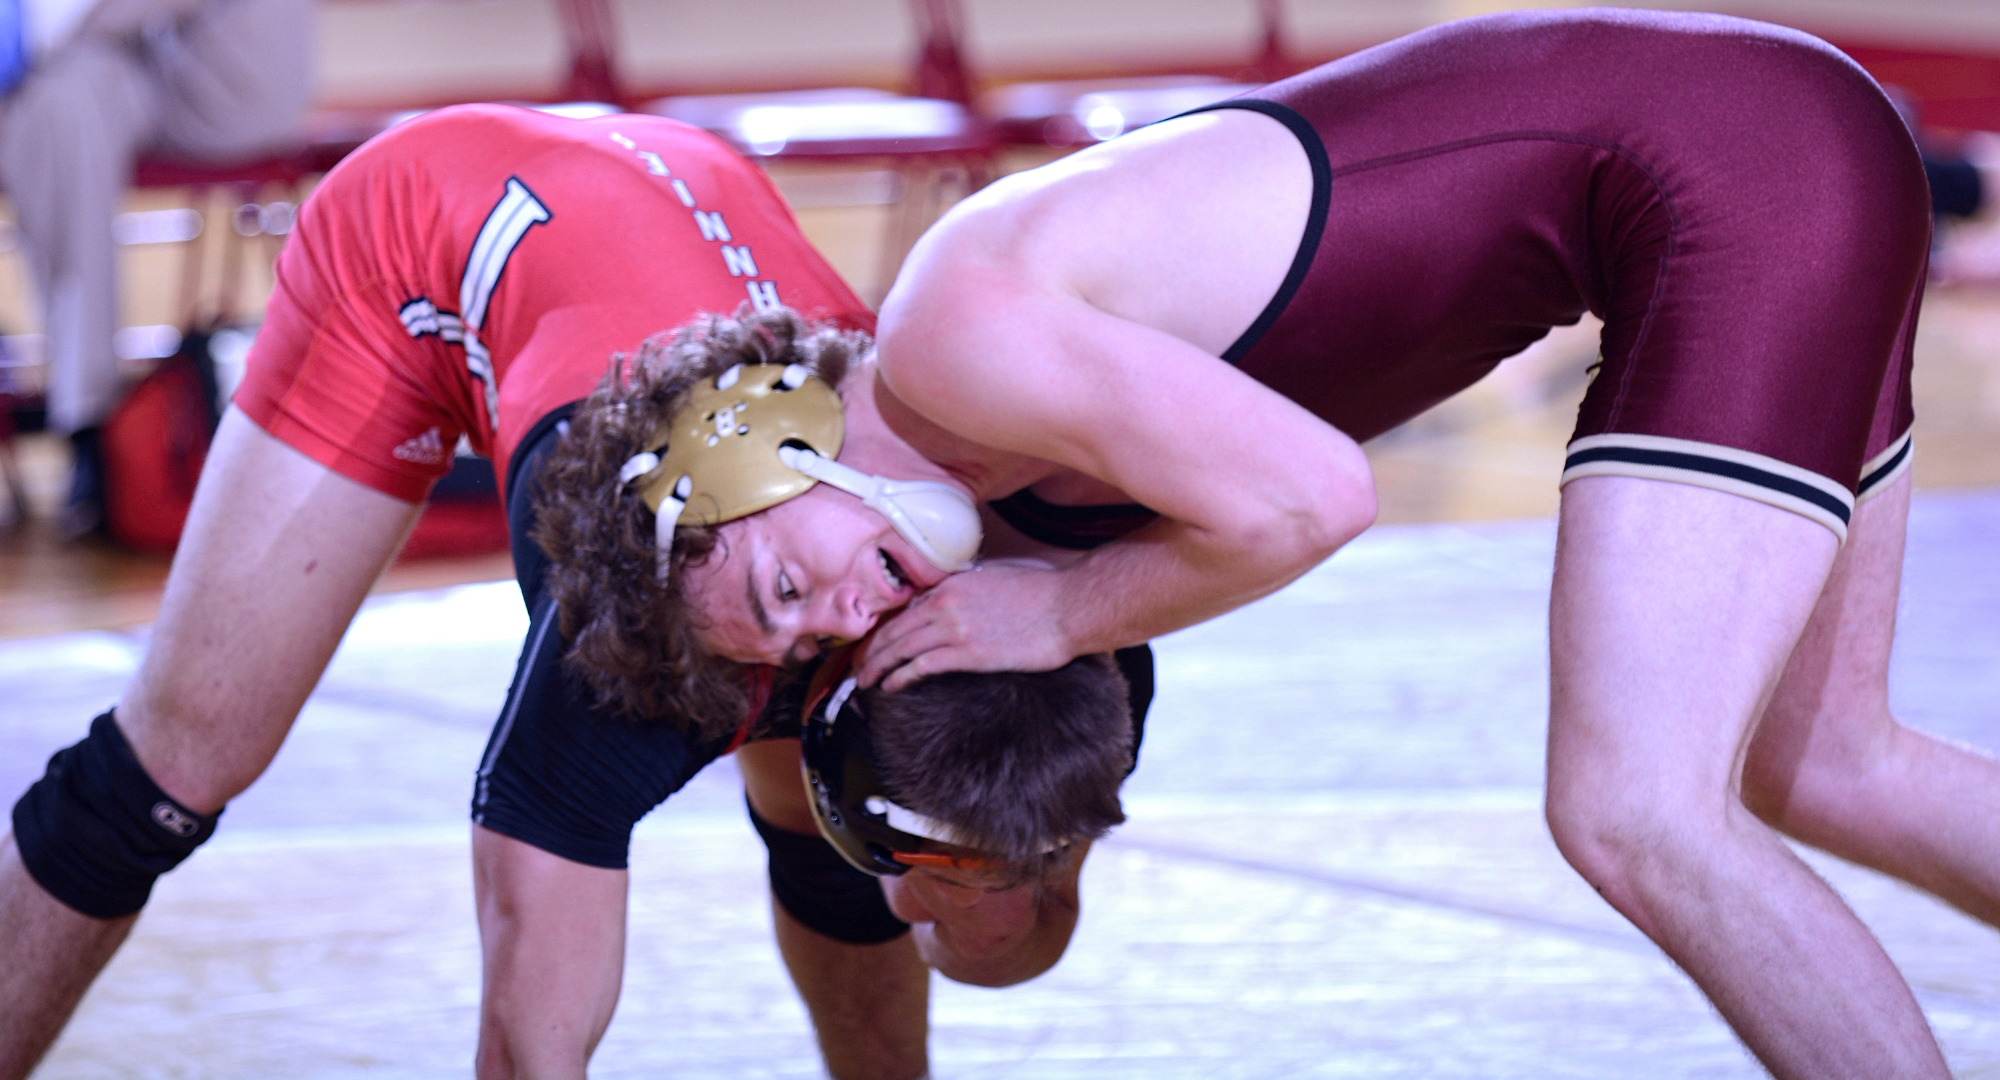 Sophomore Ty Johnson scored a pin fall in his match at 149 to help Concordia beat St. John's 33-13.